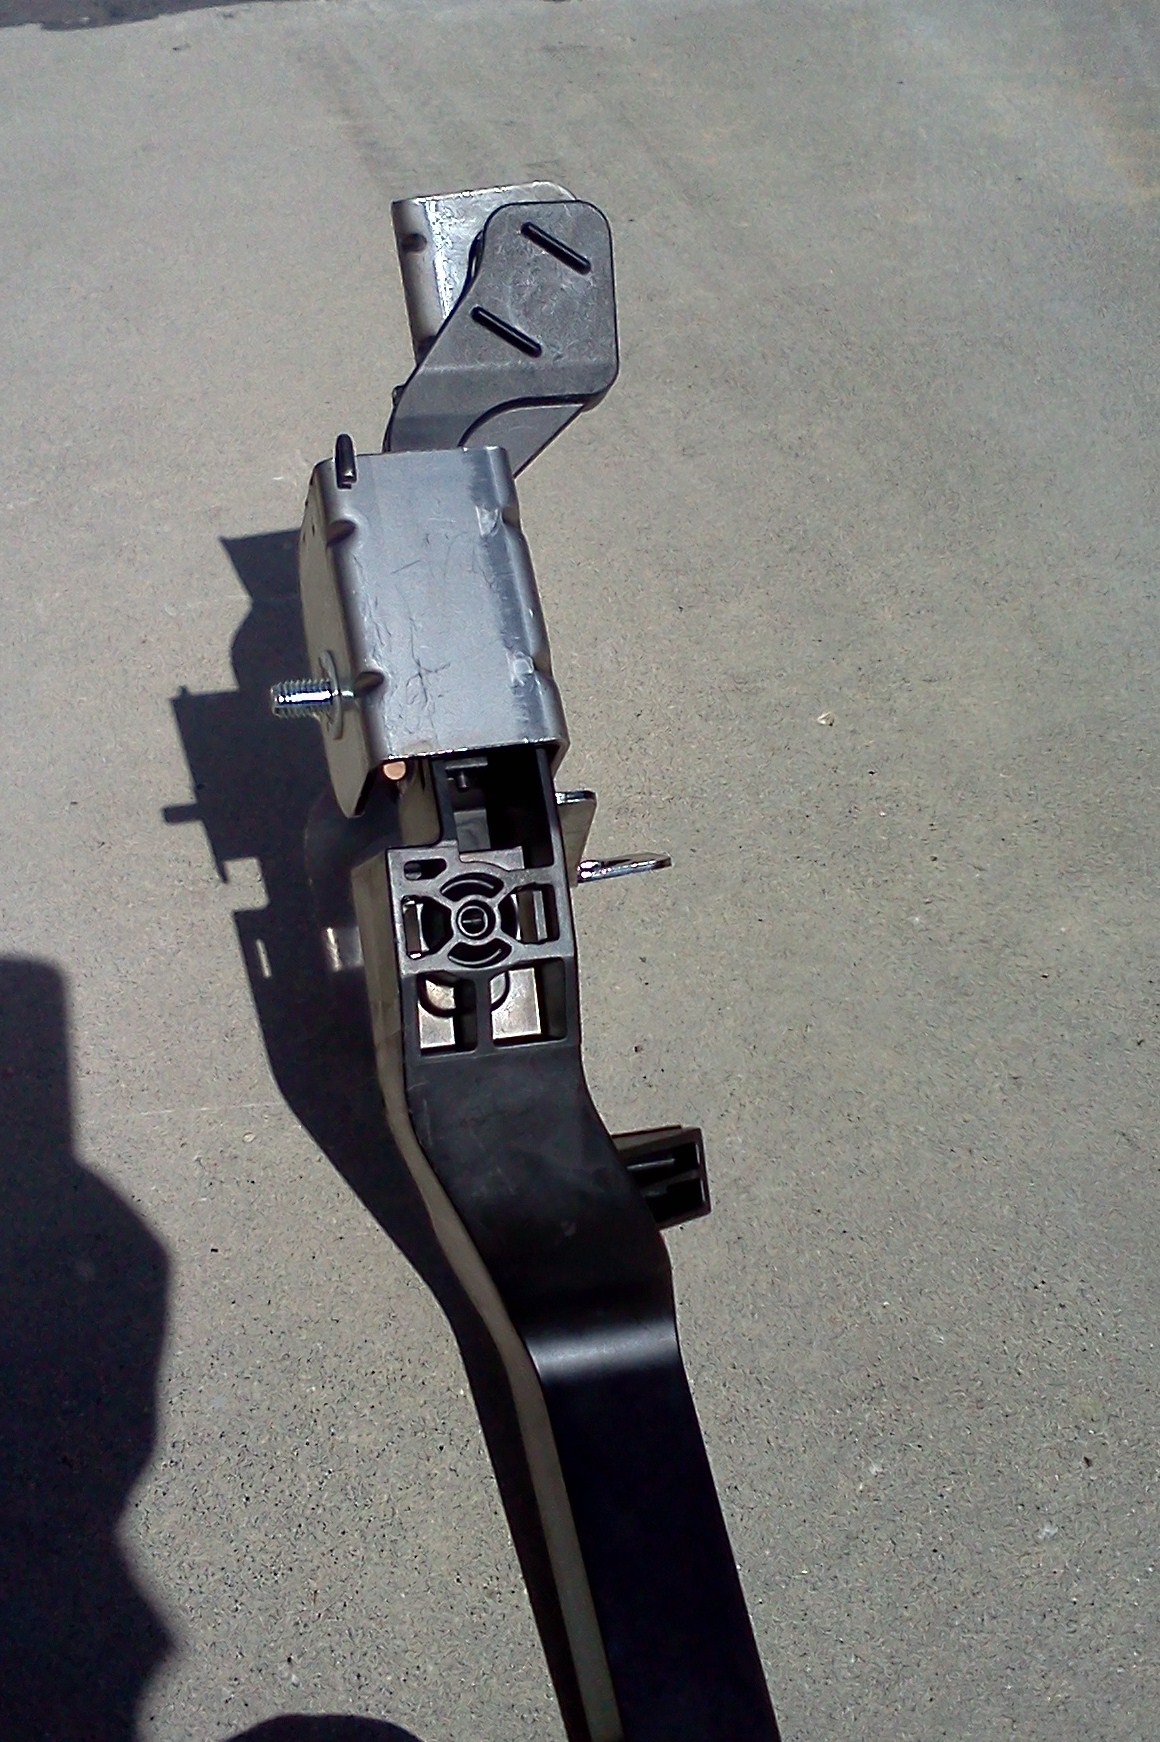 Clutch Pedal New Front View